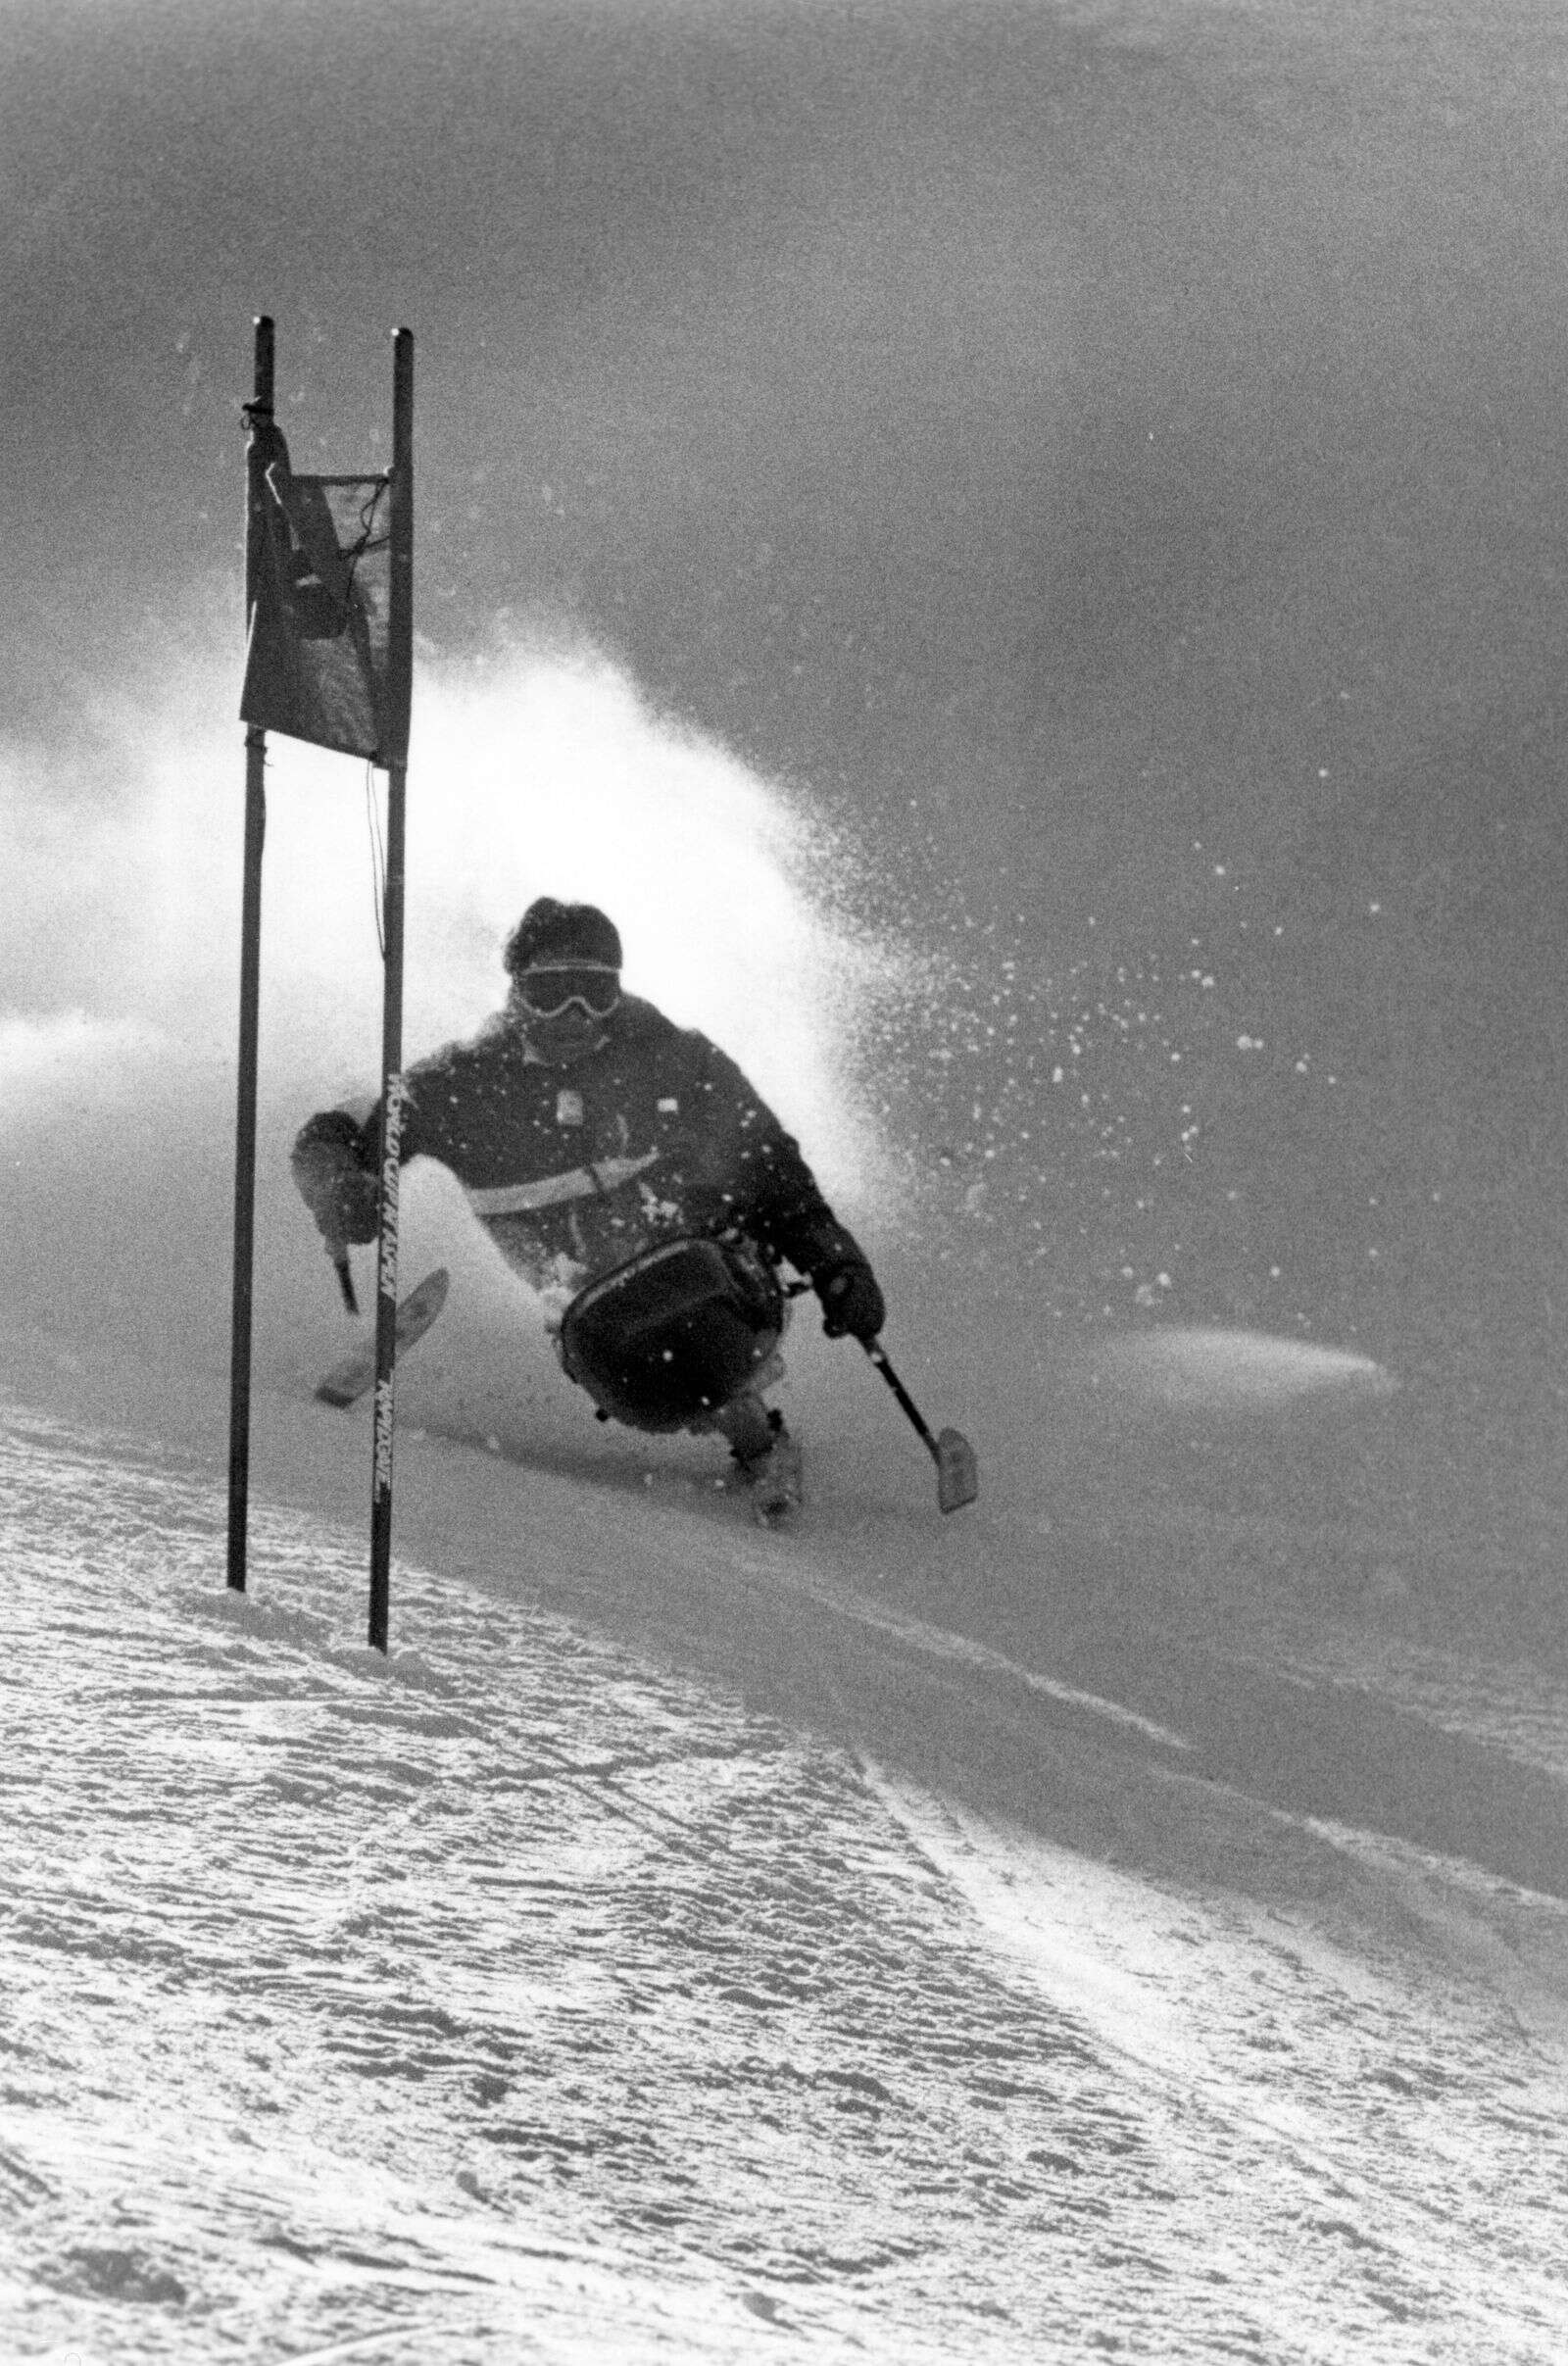 A person in a sit ski competes in the 1986 Rocky Mountain Regional Handicapped Races in Snowmass.